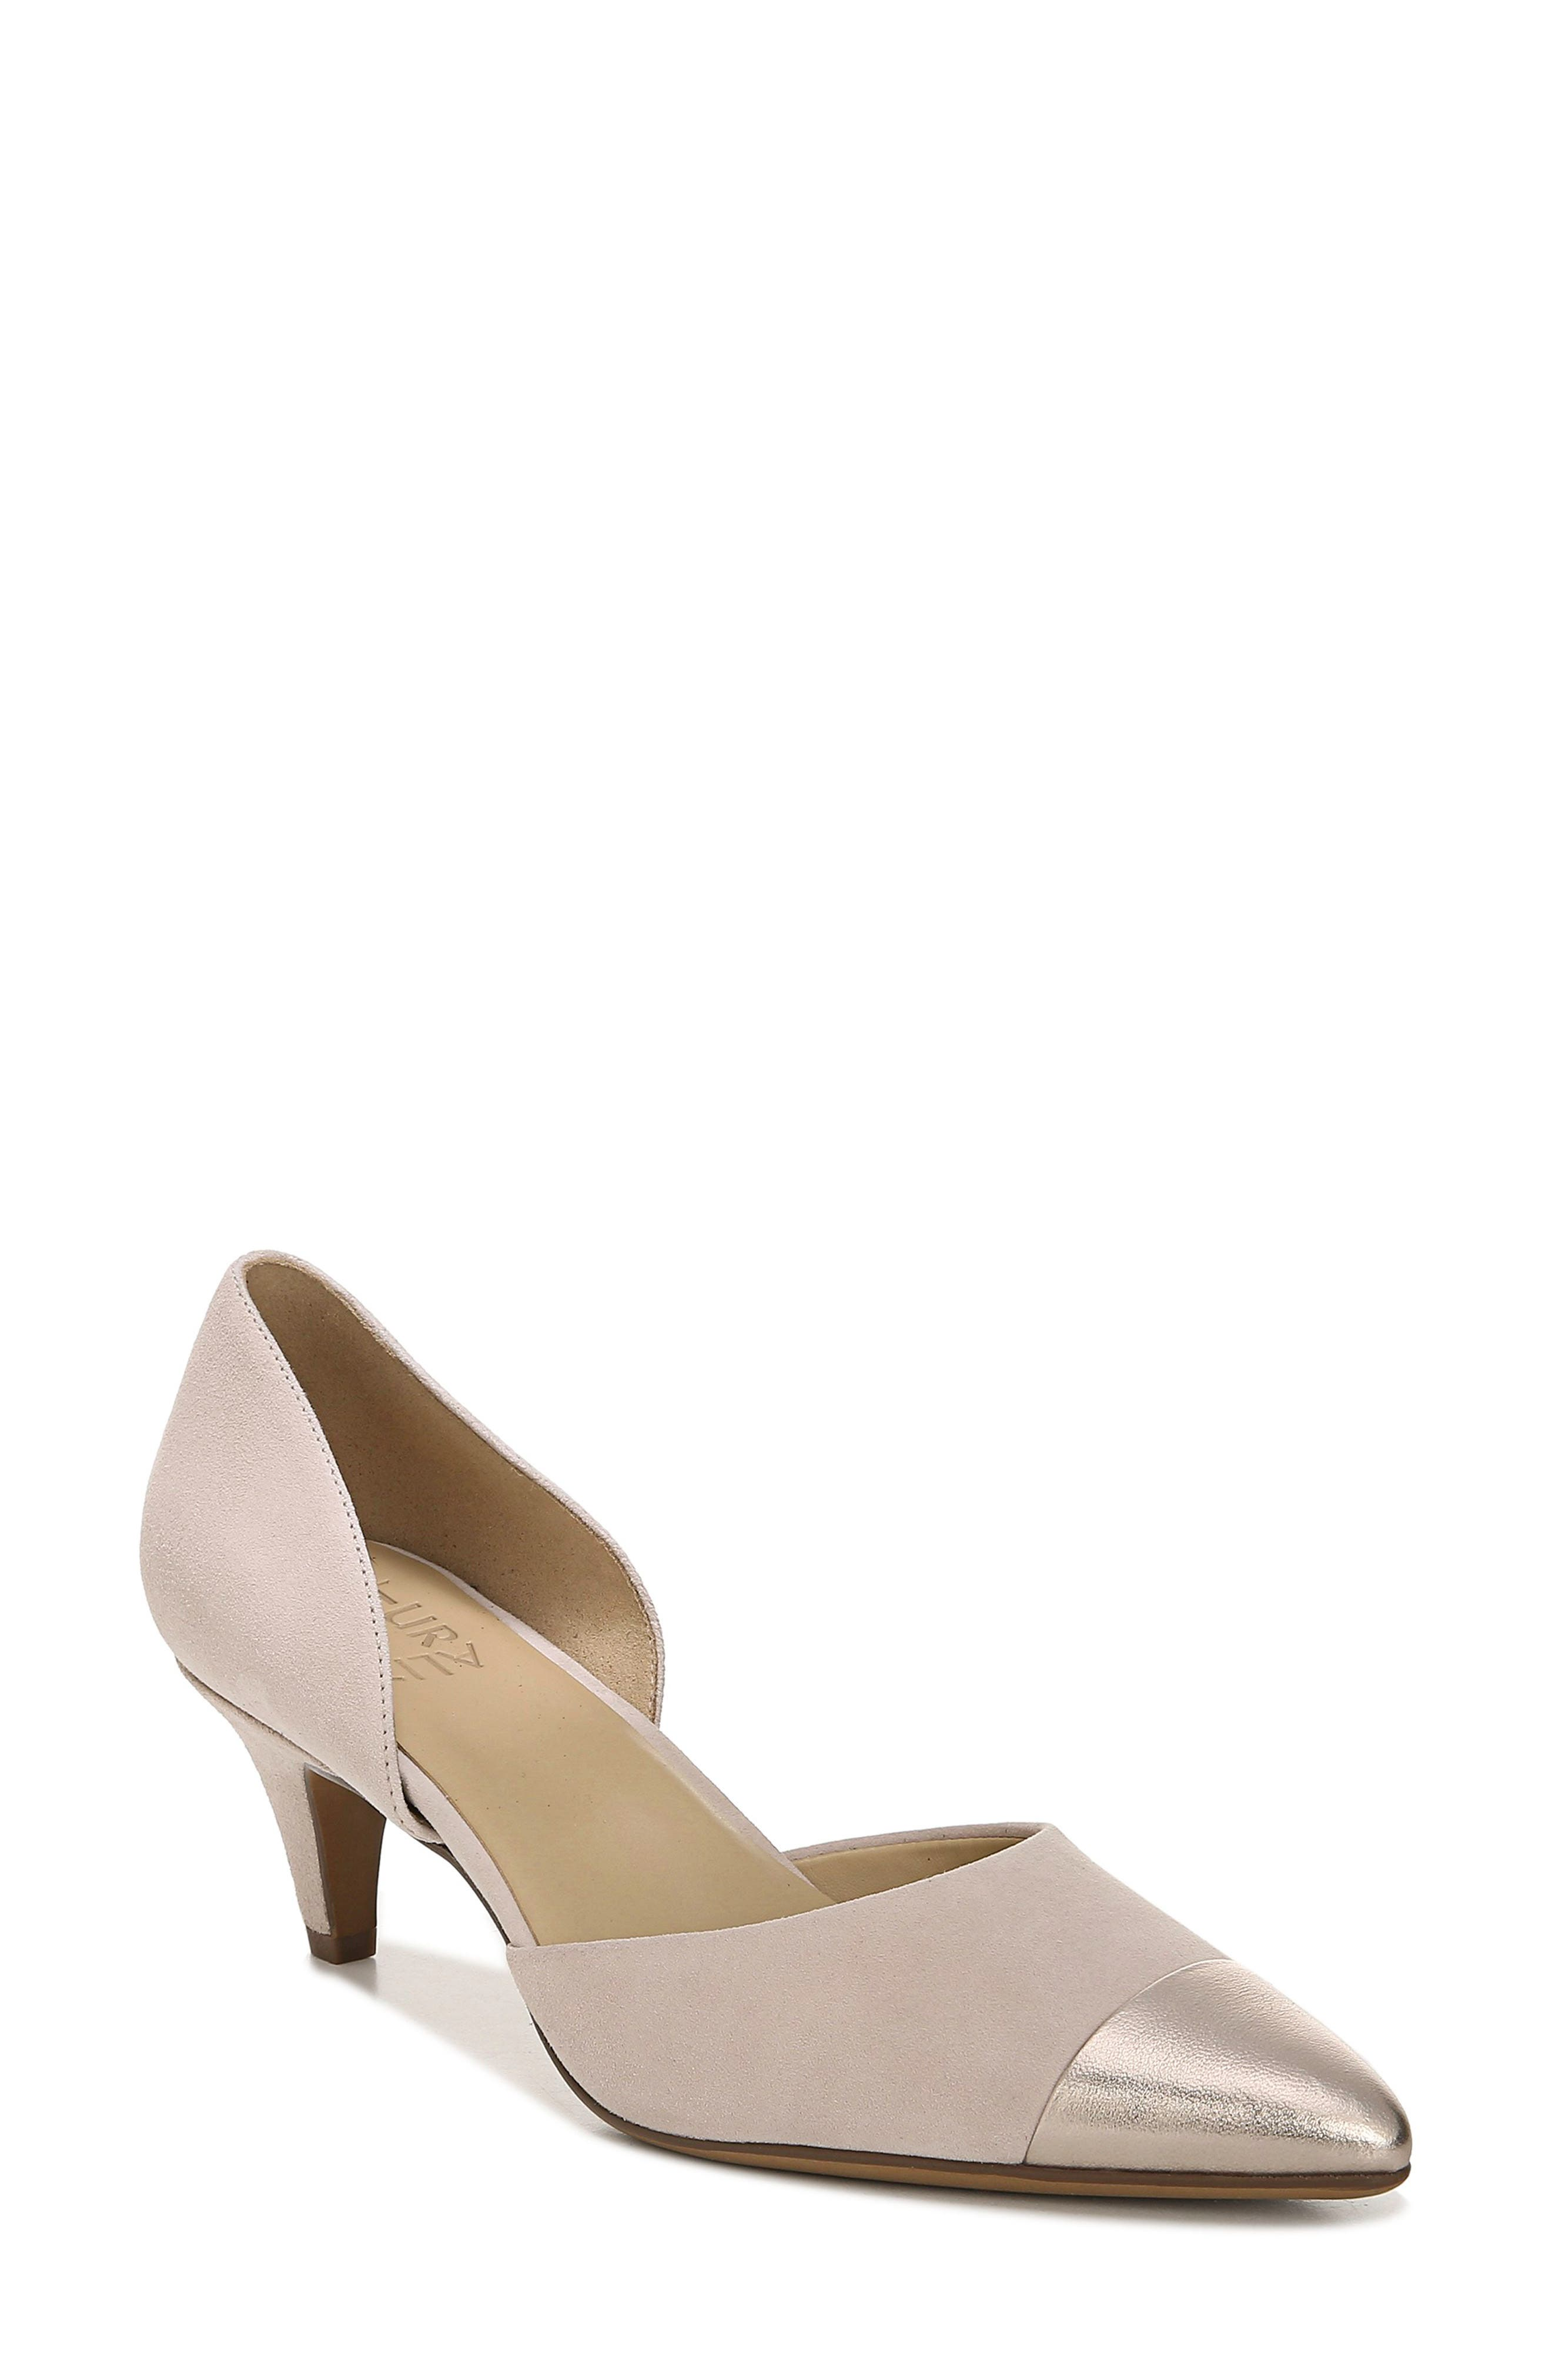 Naturalizer Barb Leather Pump, Beige